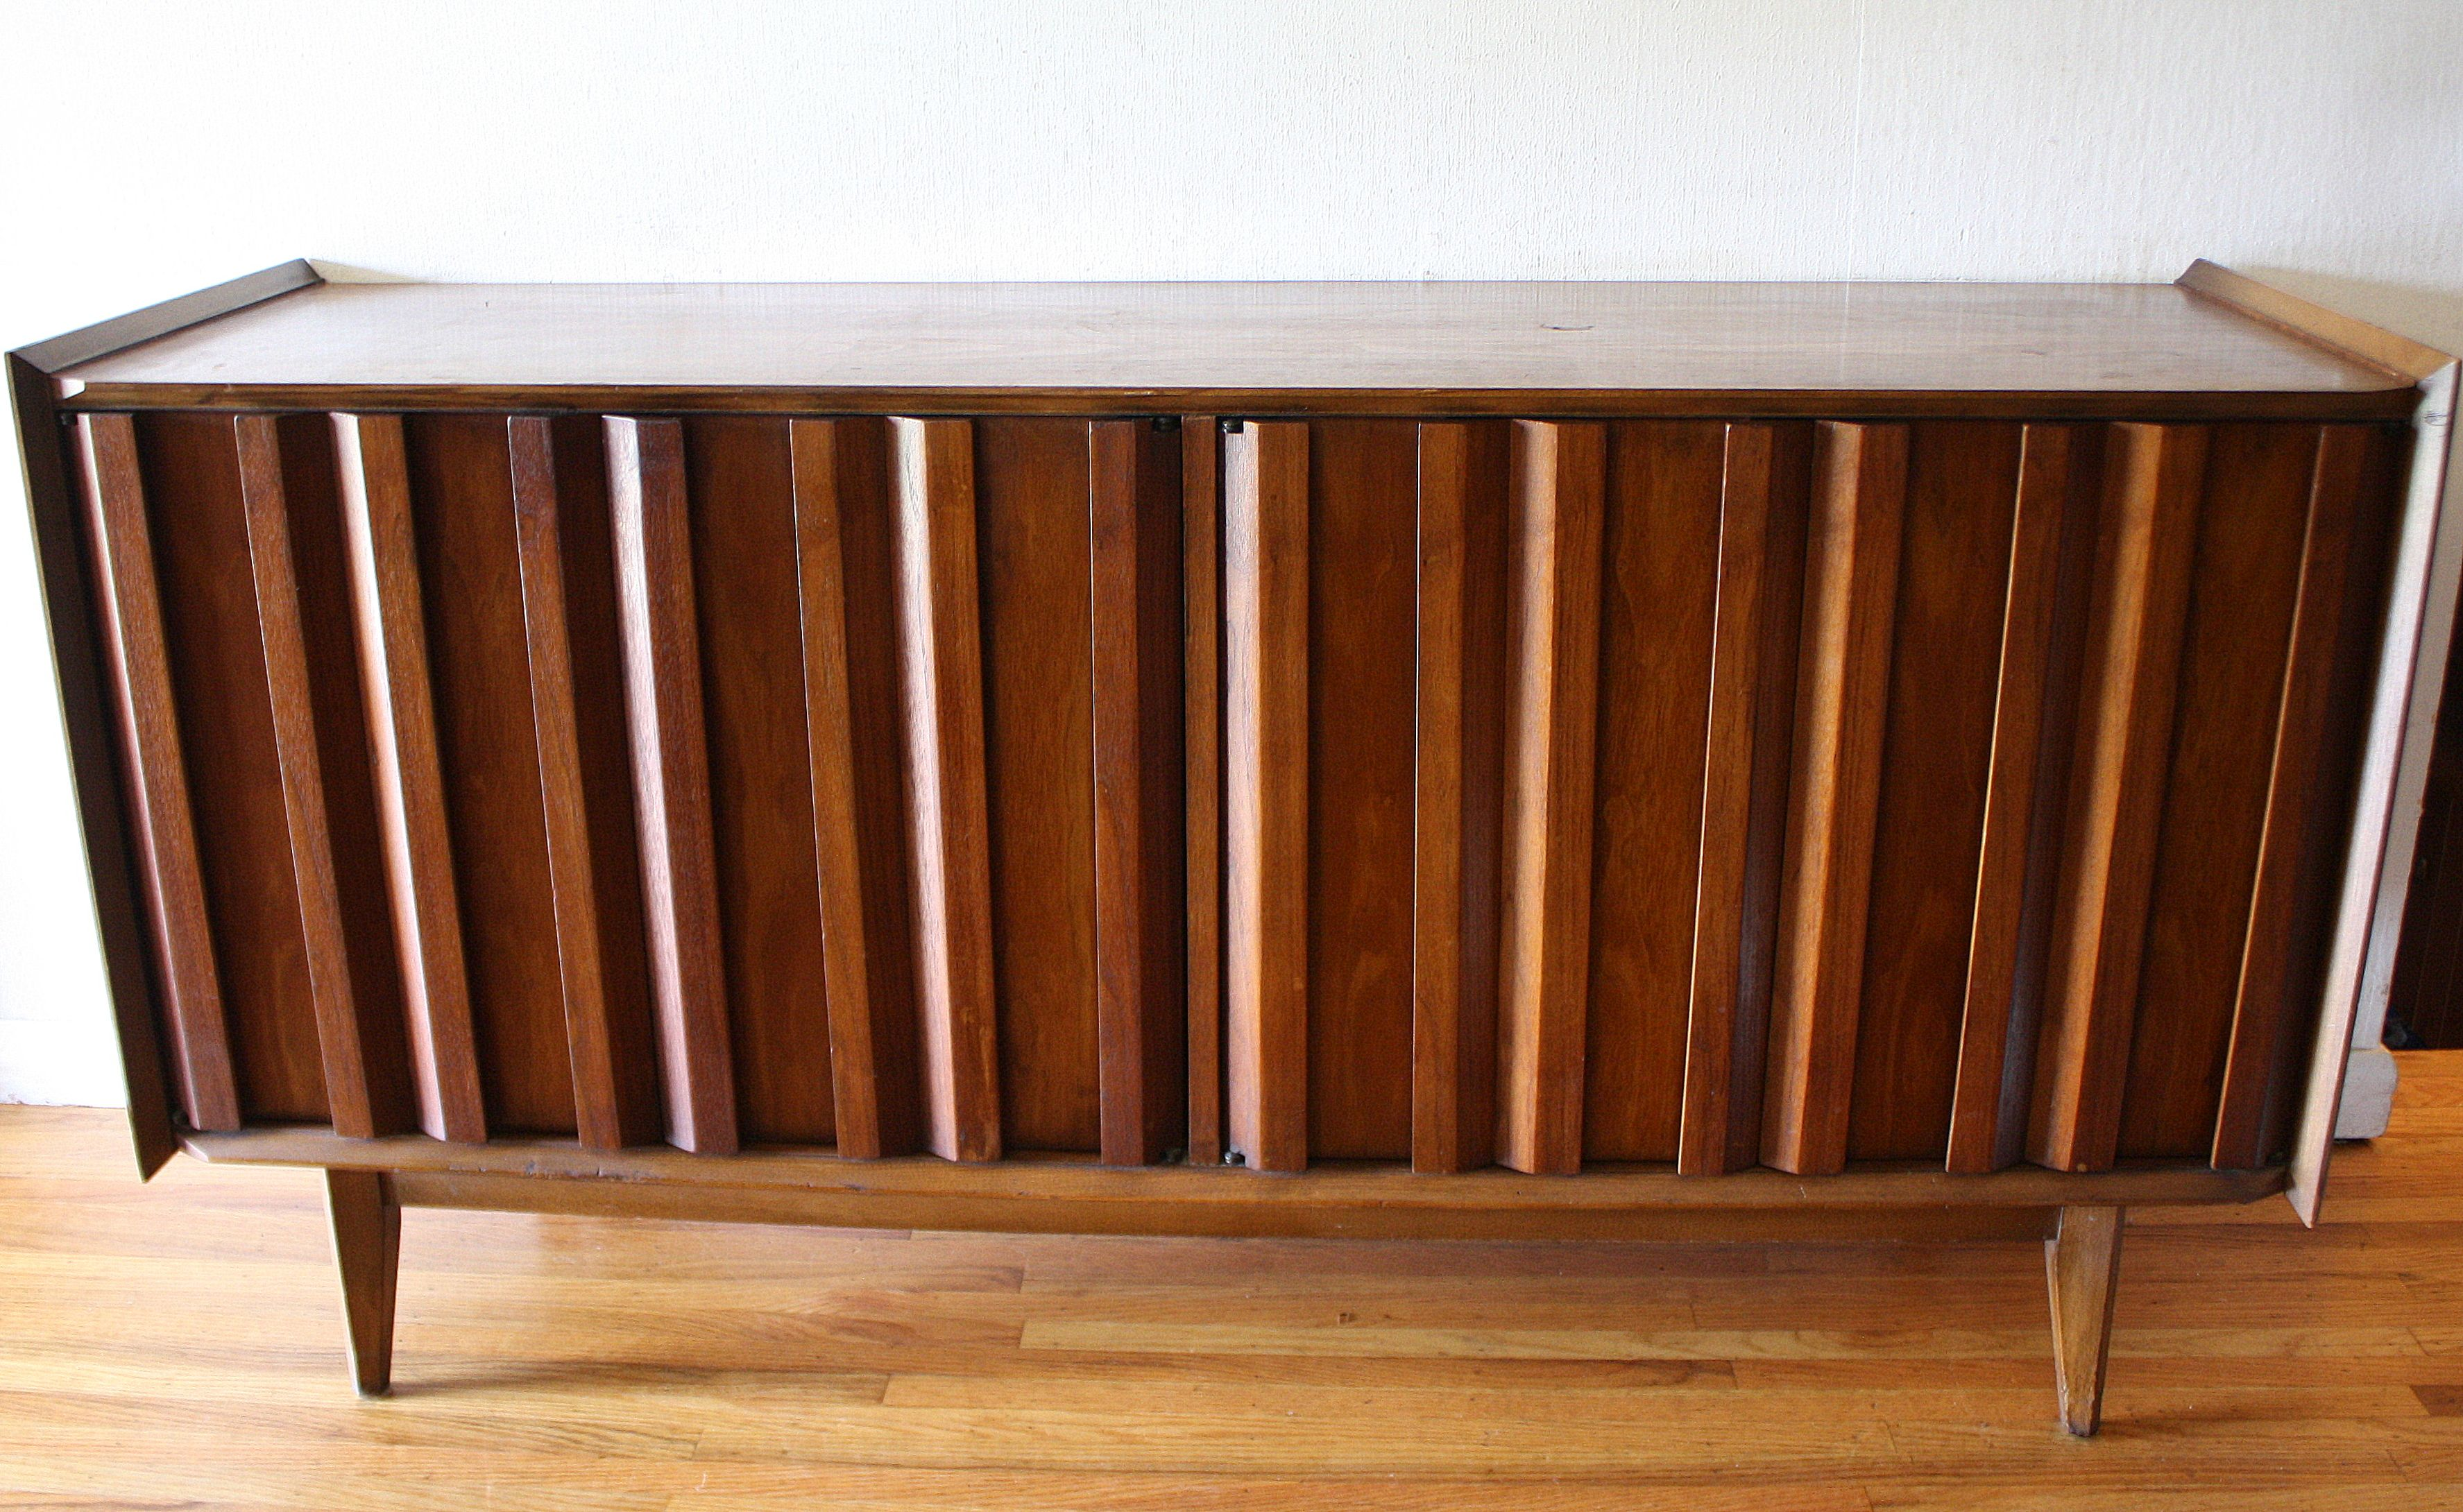 Mid Century Modern Credenza With A Vertical Slatted Design Incorporated Into The Cabinet Doors